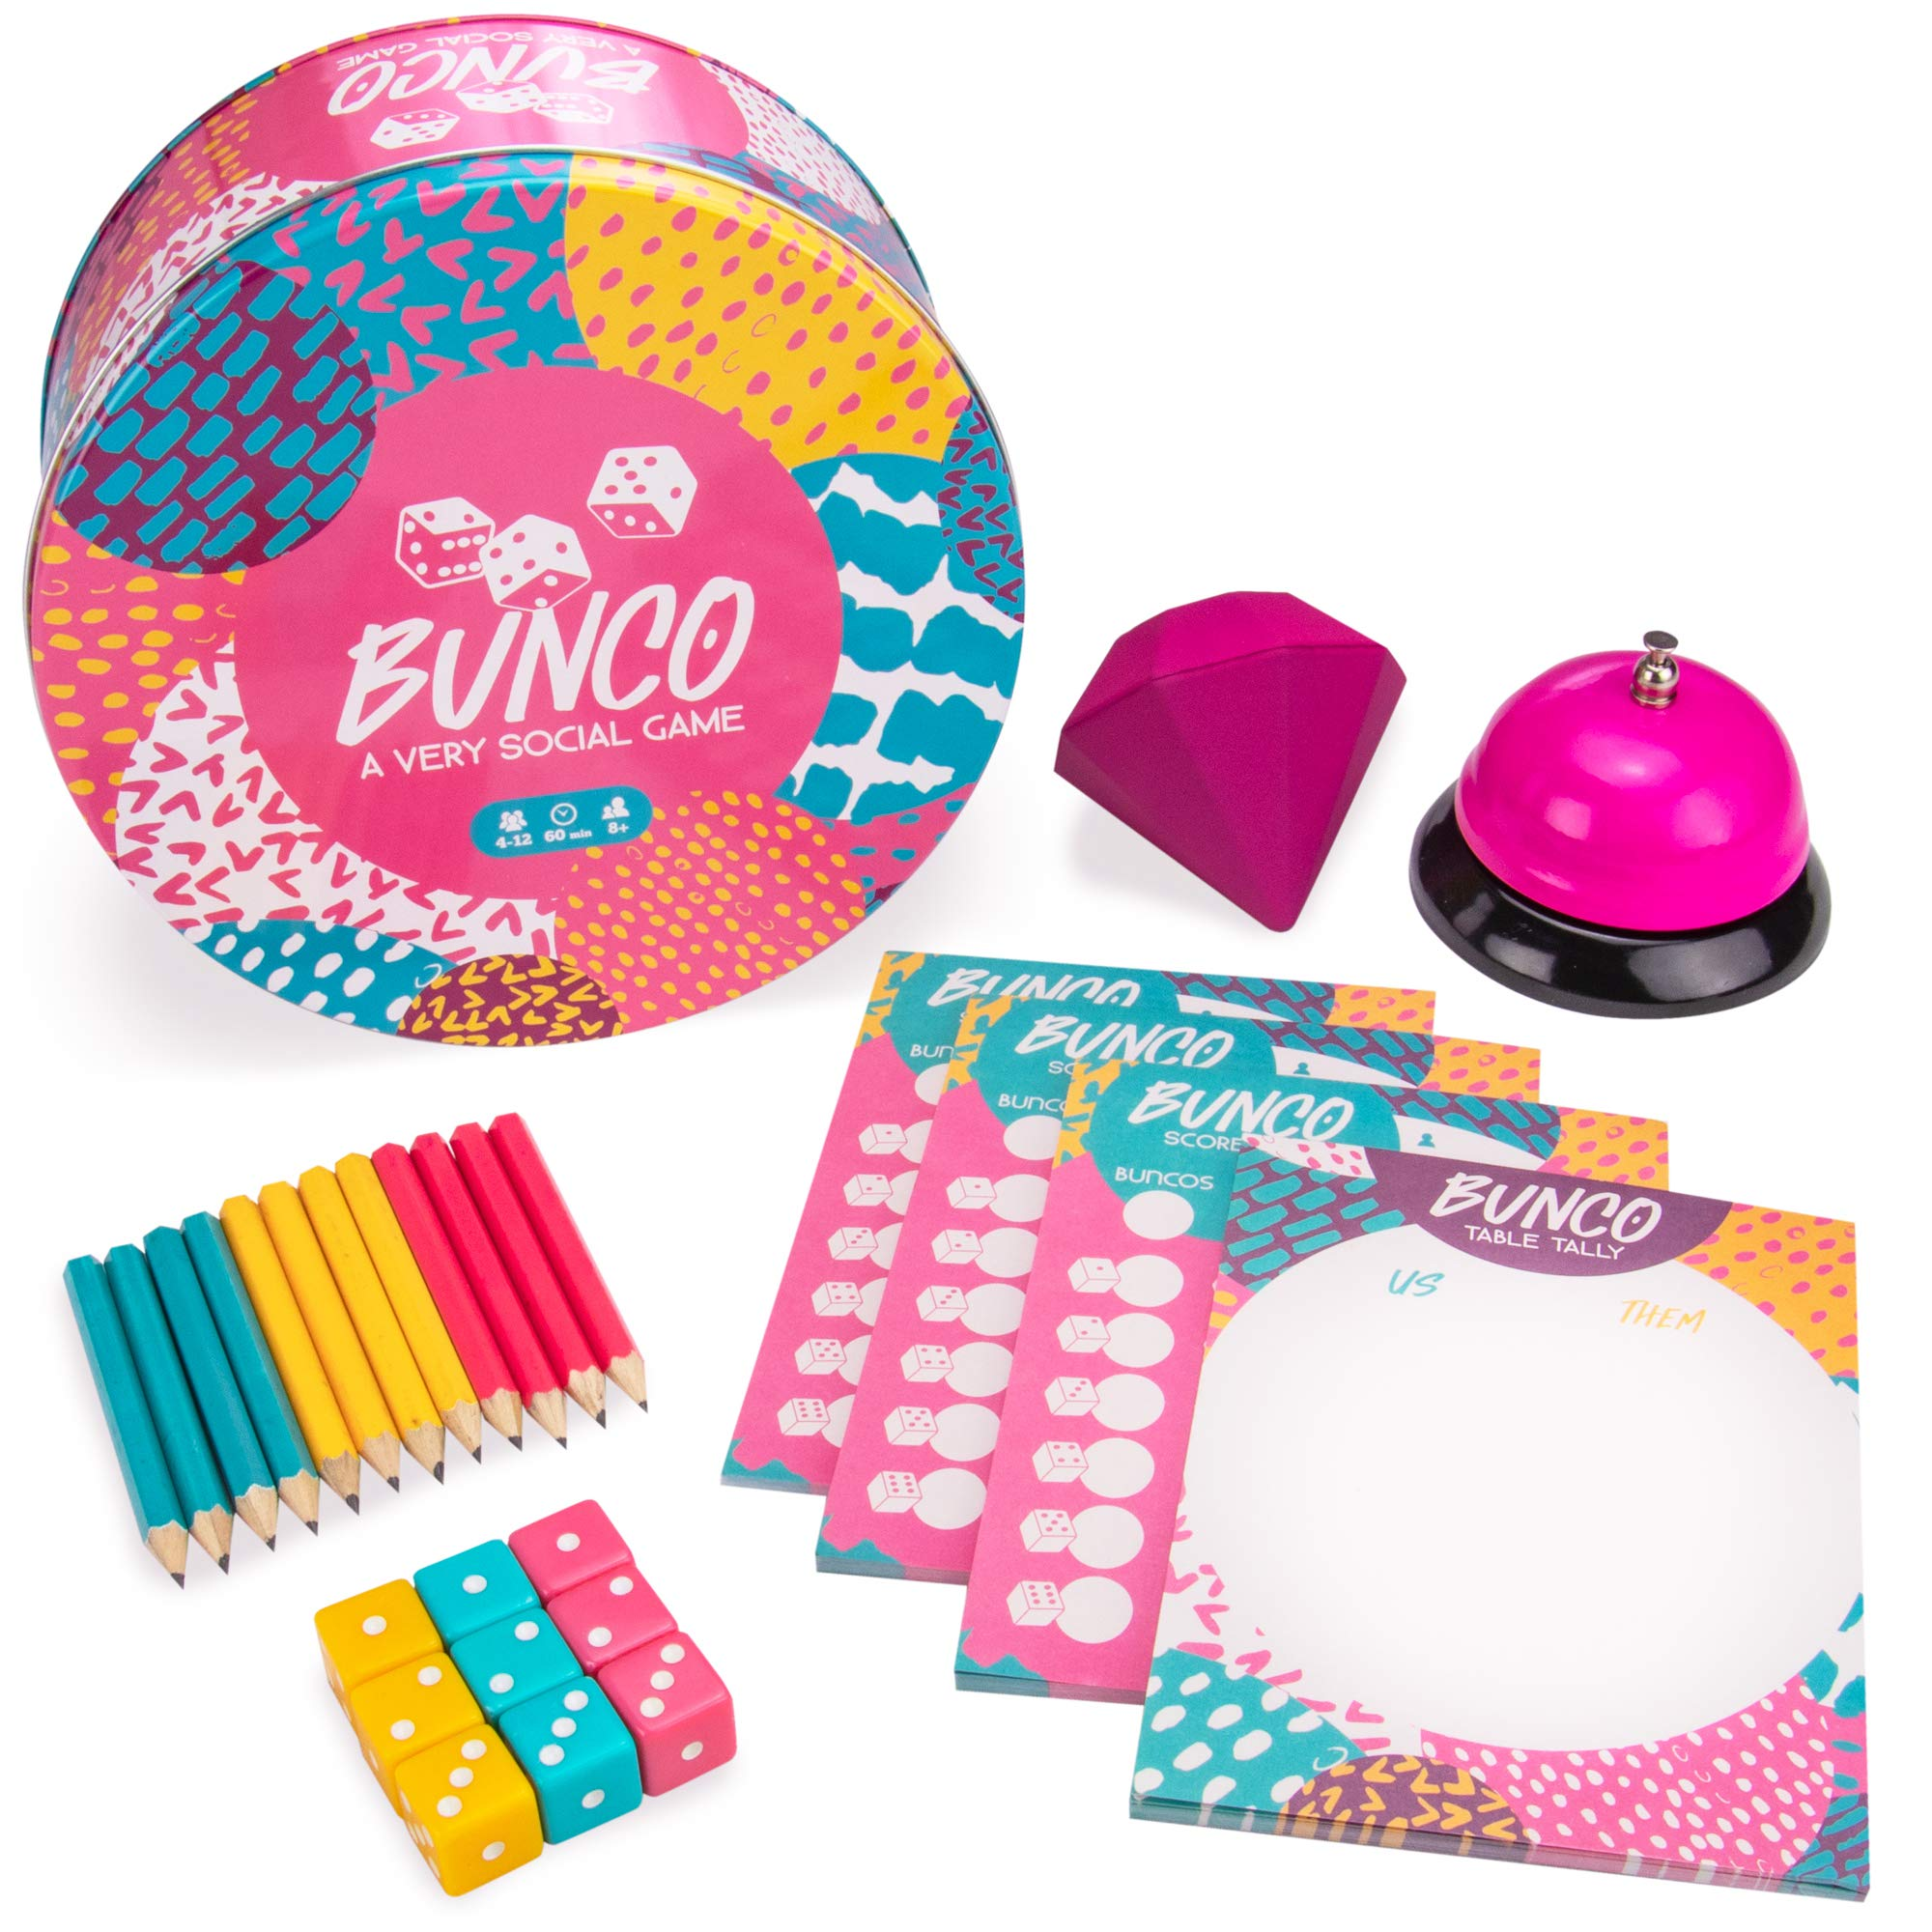 Bunco: A Very Social Game | 12-Player Party Dice Game | Includes Dice, Scorecards, Pencils, Bell, & Squishy Traveling Jewel